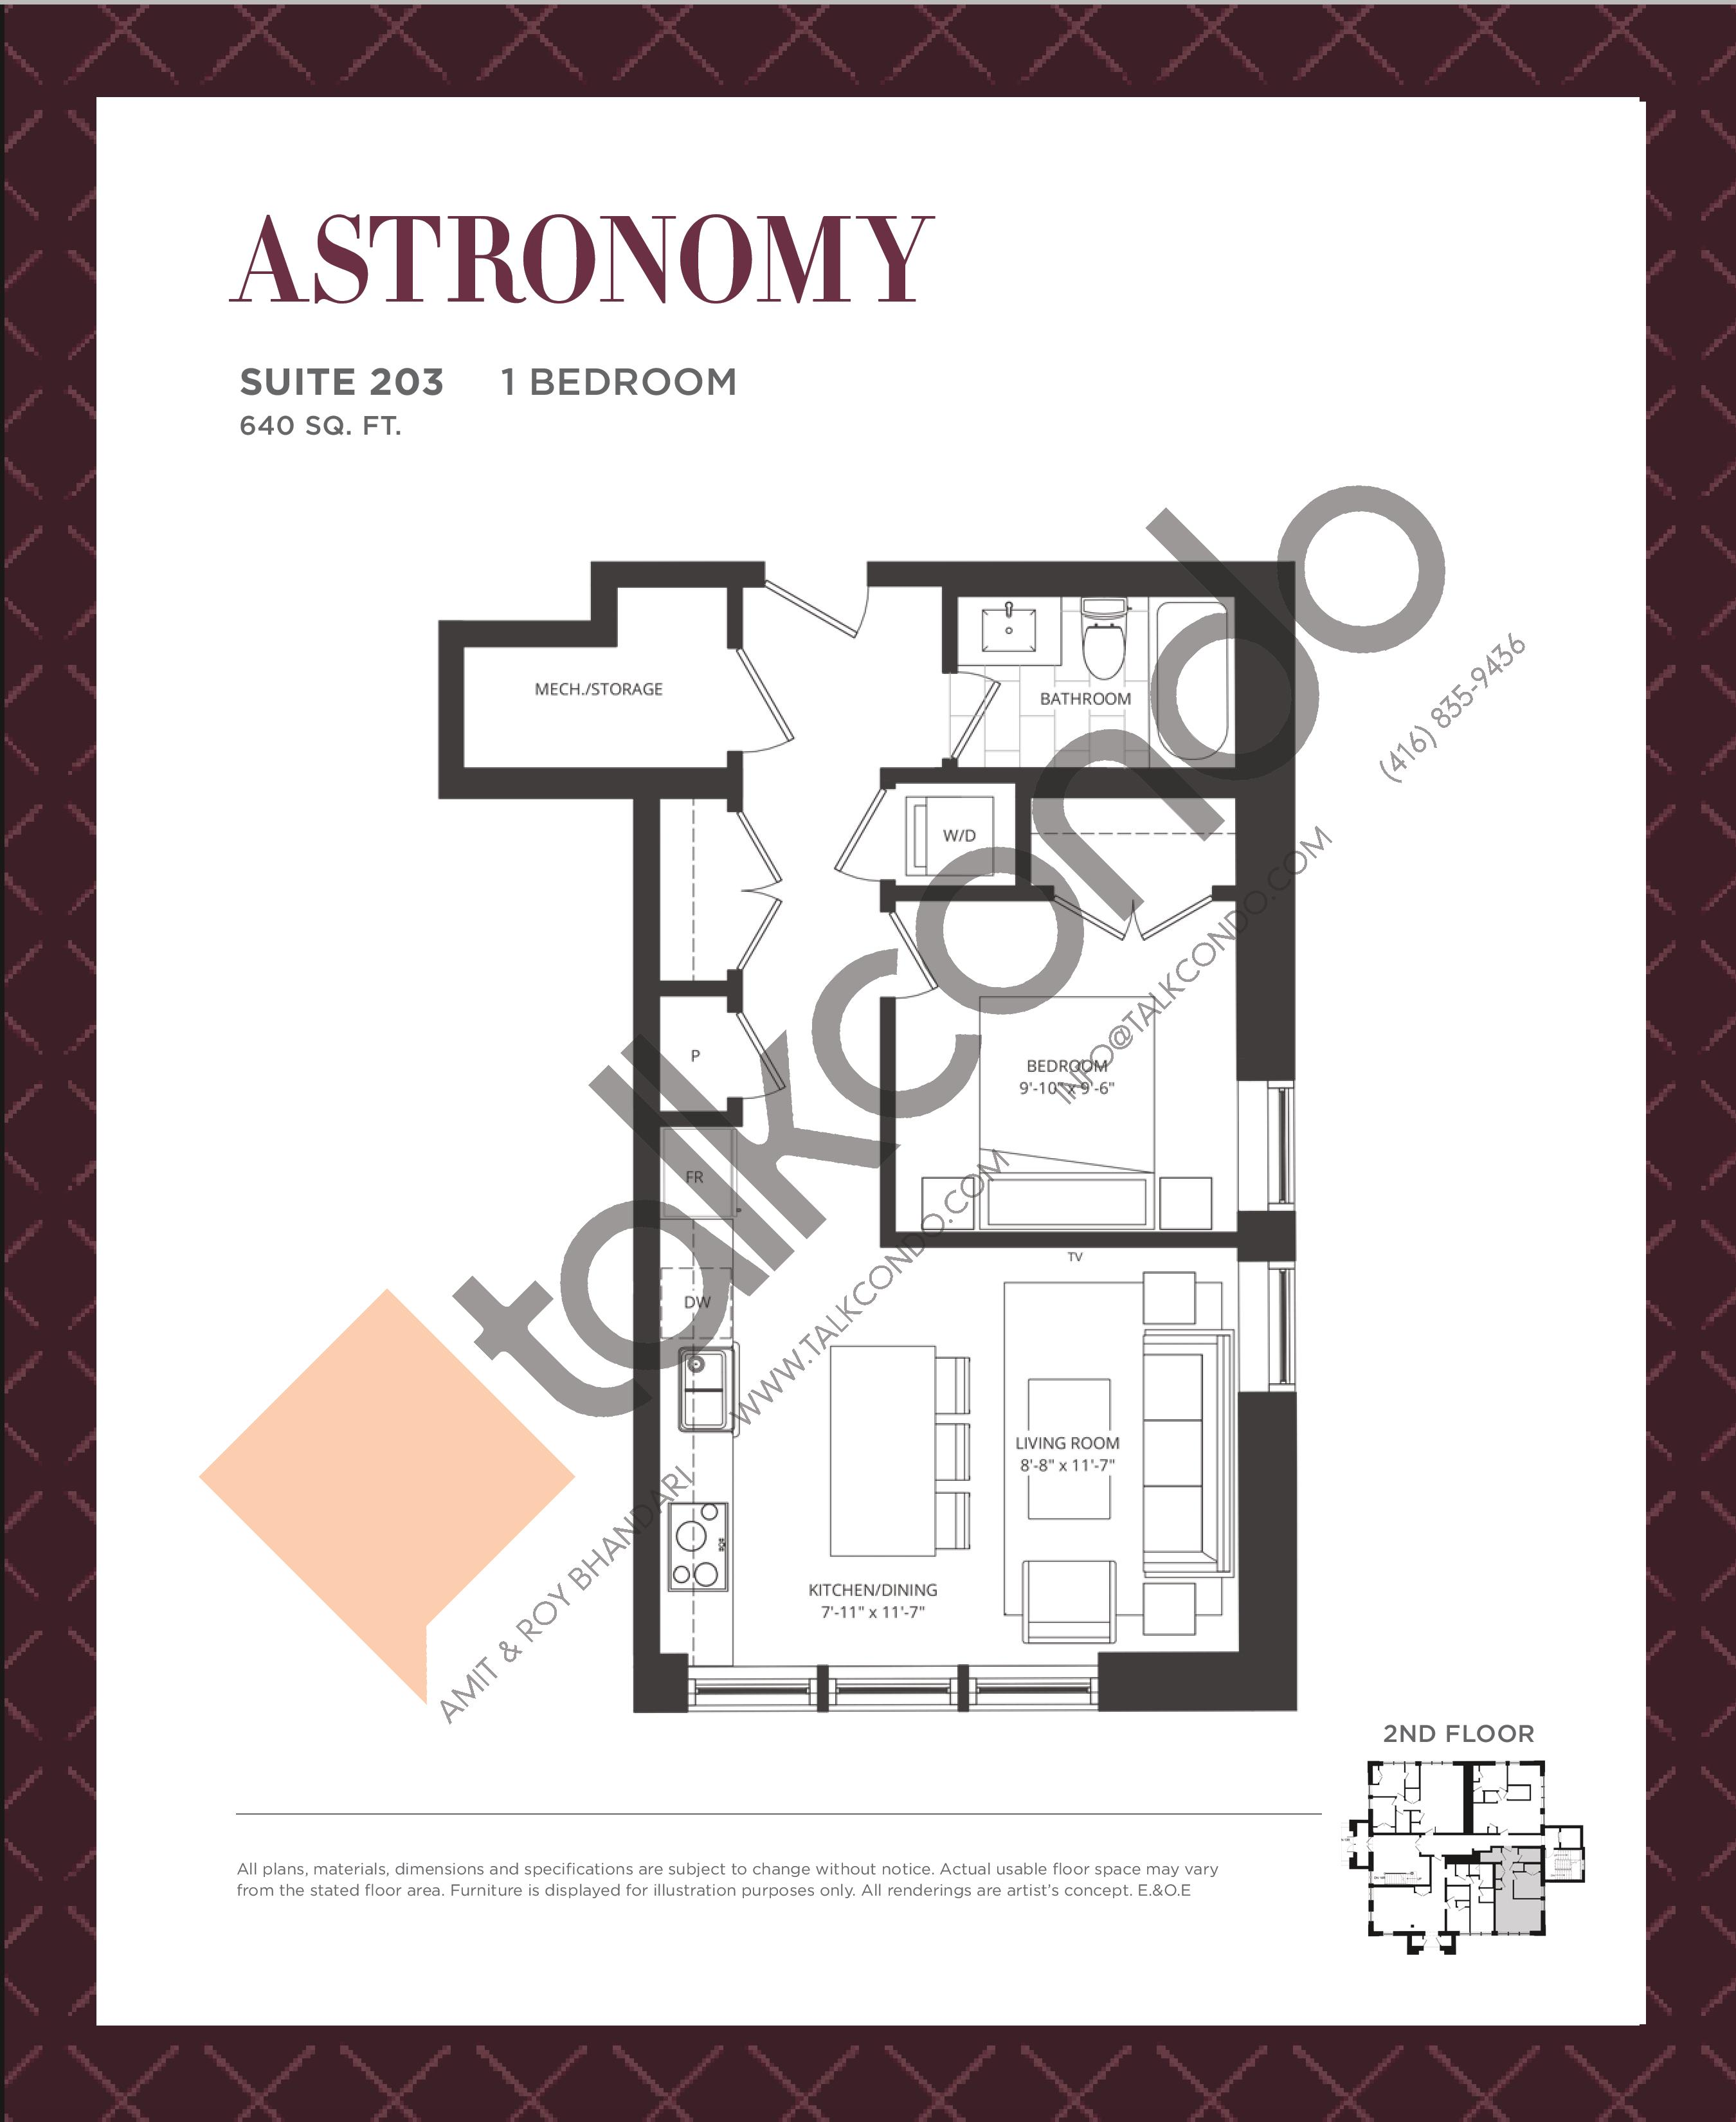 Astronomy Floor Plan at King George School Lofts & Town Homes - 640 sq.ft